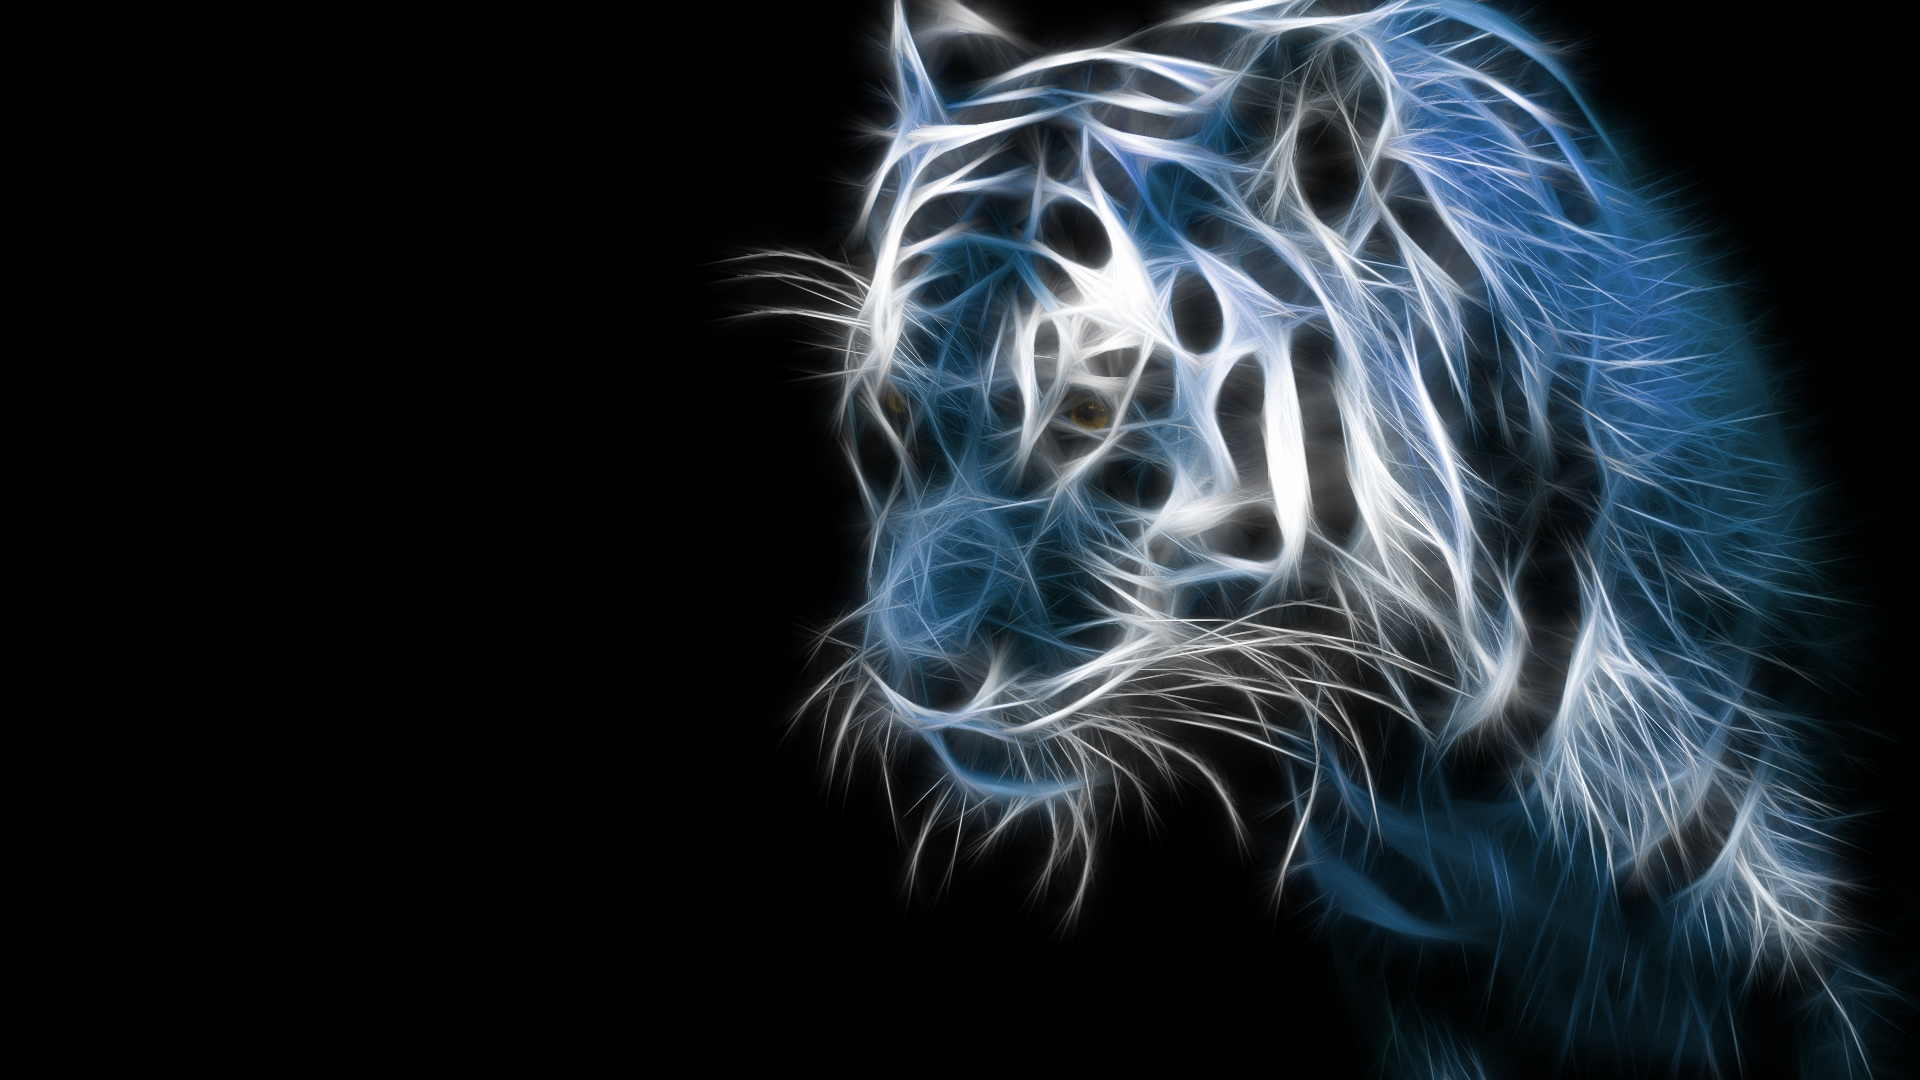 download animated tiger wallpaper which is under the tiger wallpapers 1920x1080